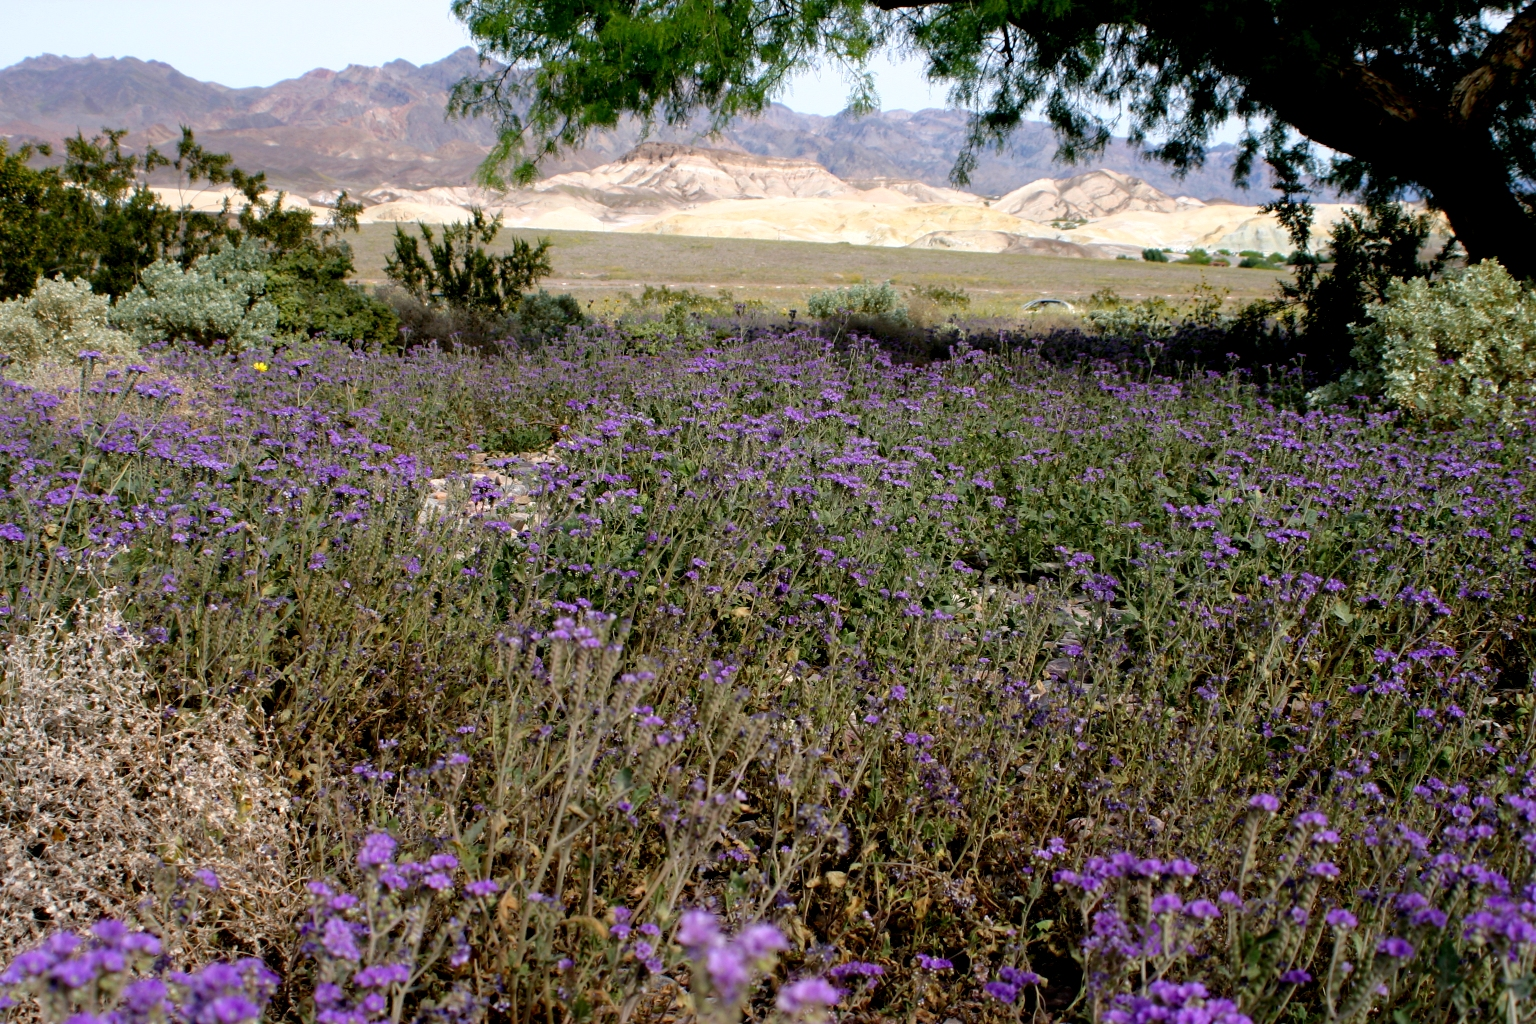 http://upload.wikimedia.org/wikipedia/commons/6/6e/Death_valley_flowers_2.jpg